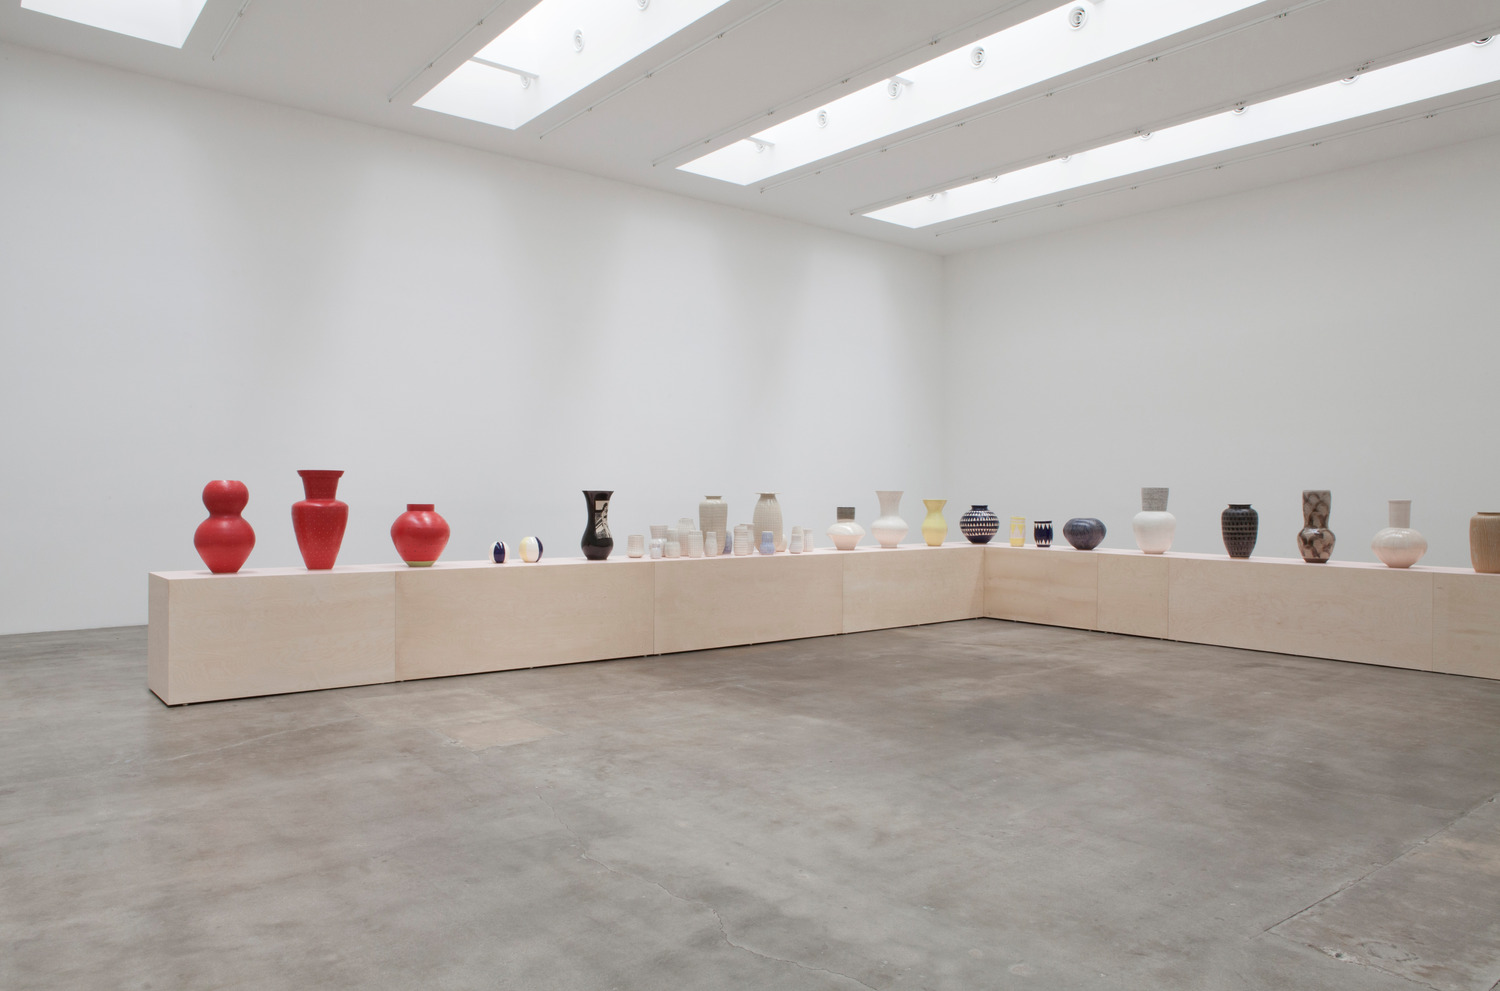 Installation View, Blum & Poe, Los Angeles, 2016